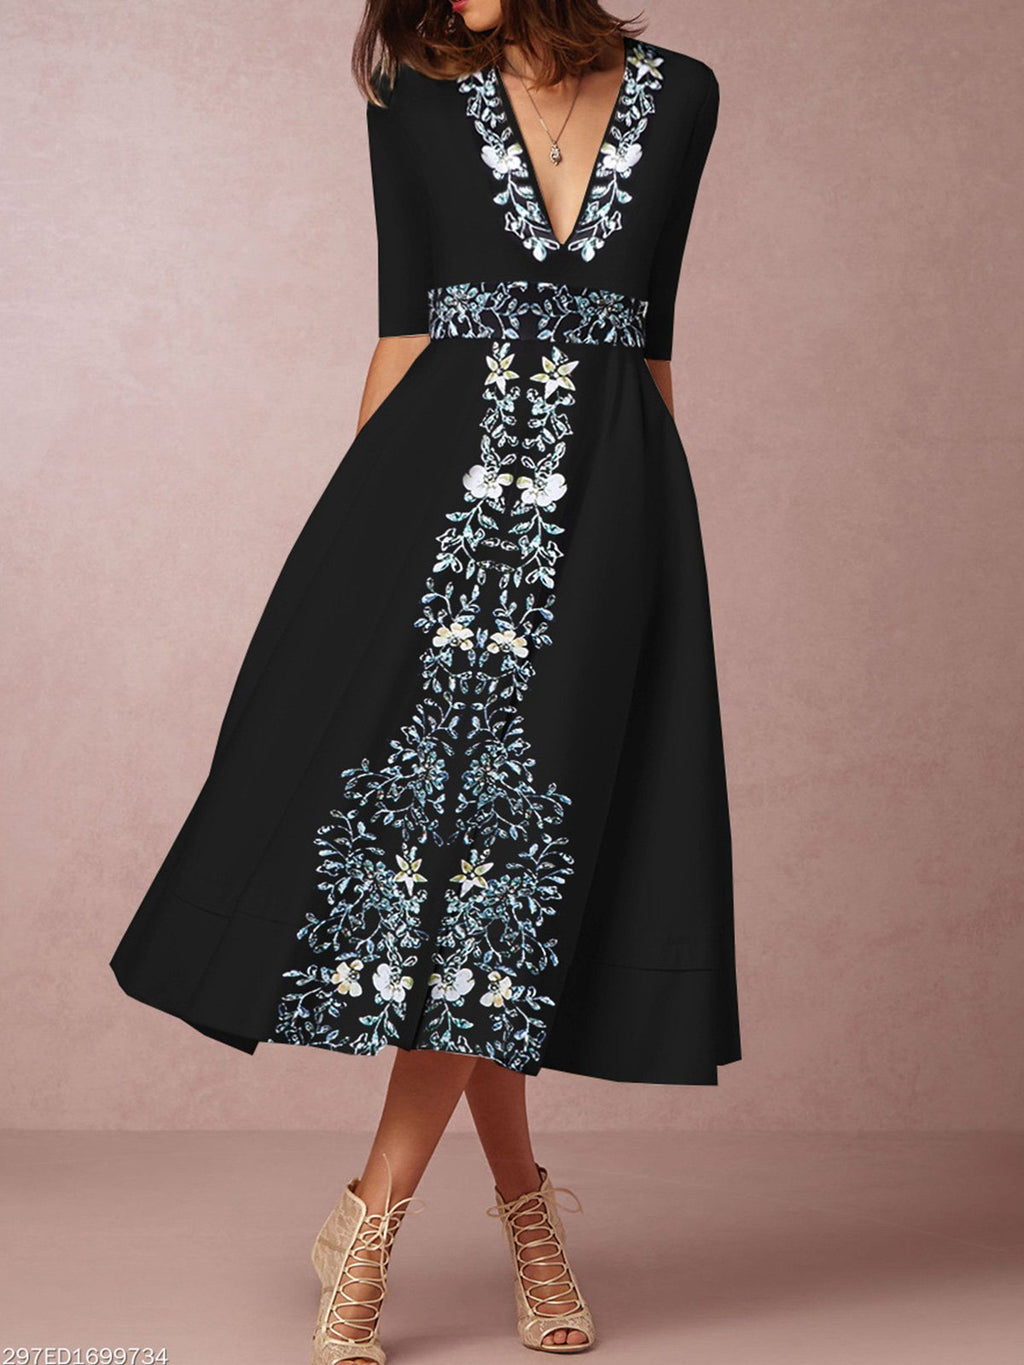 Black A-Line Party Vintage Floral Dress